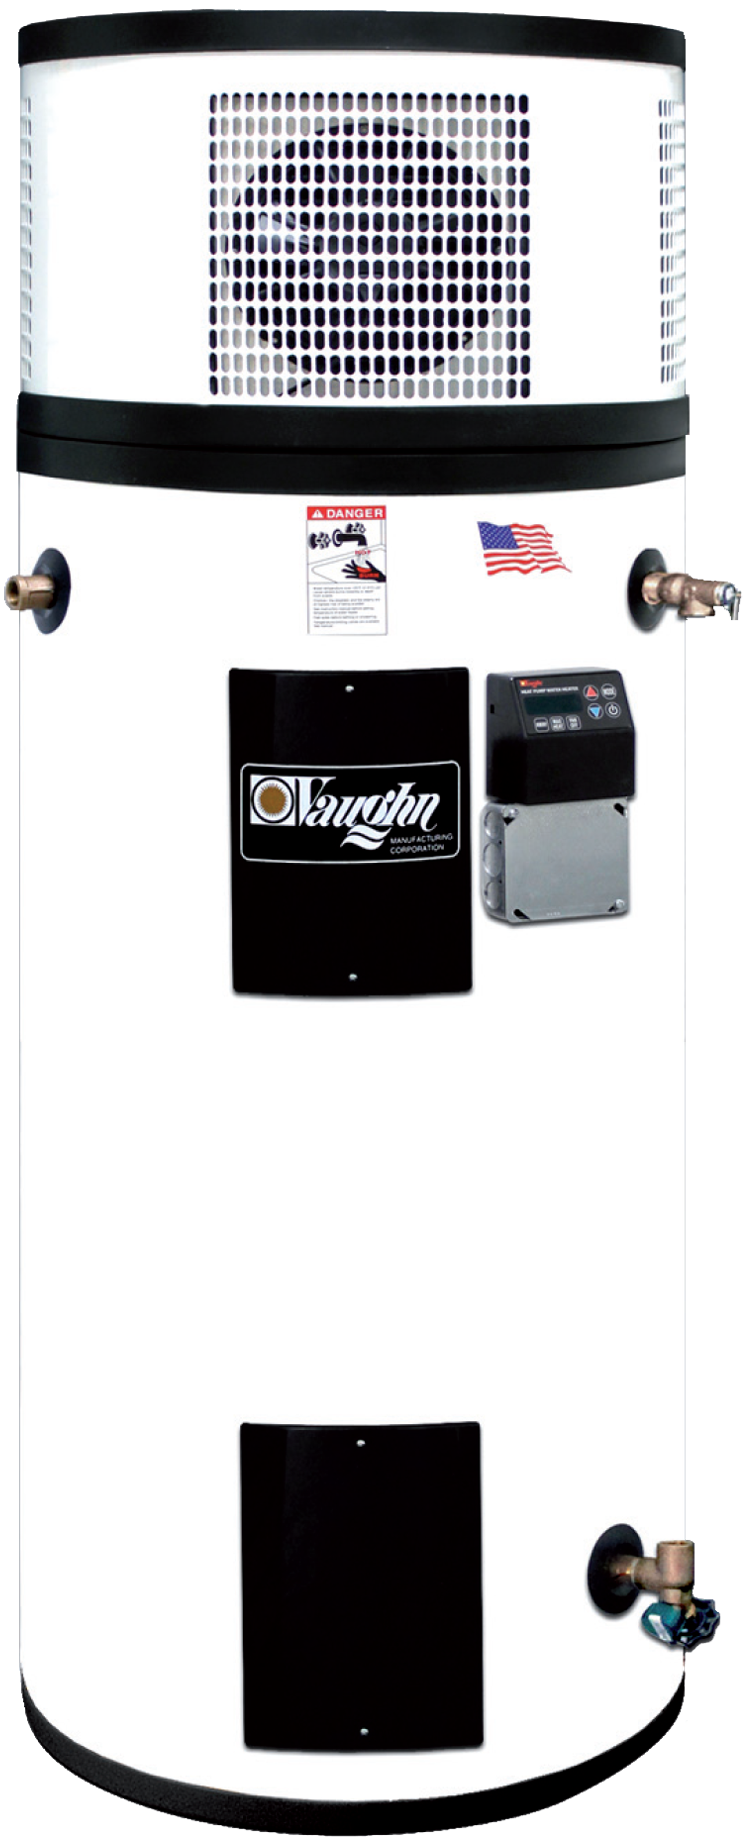 High Efficiency Electric Water Heater Vaughn